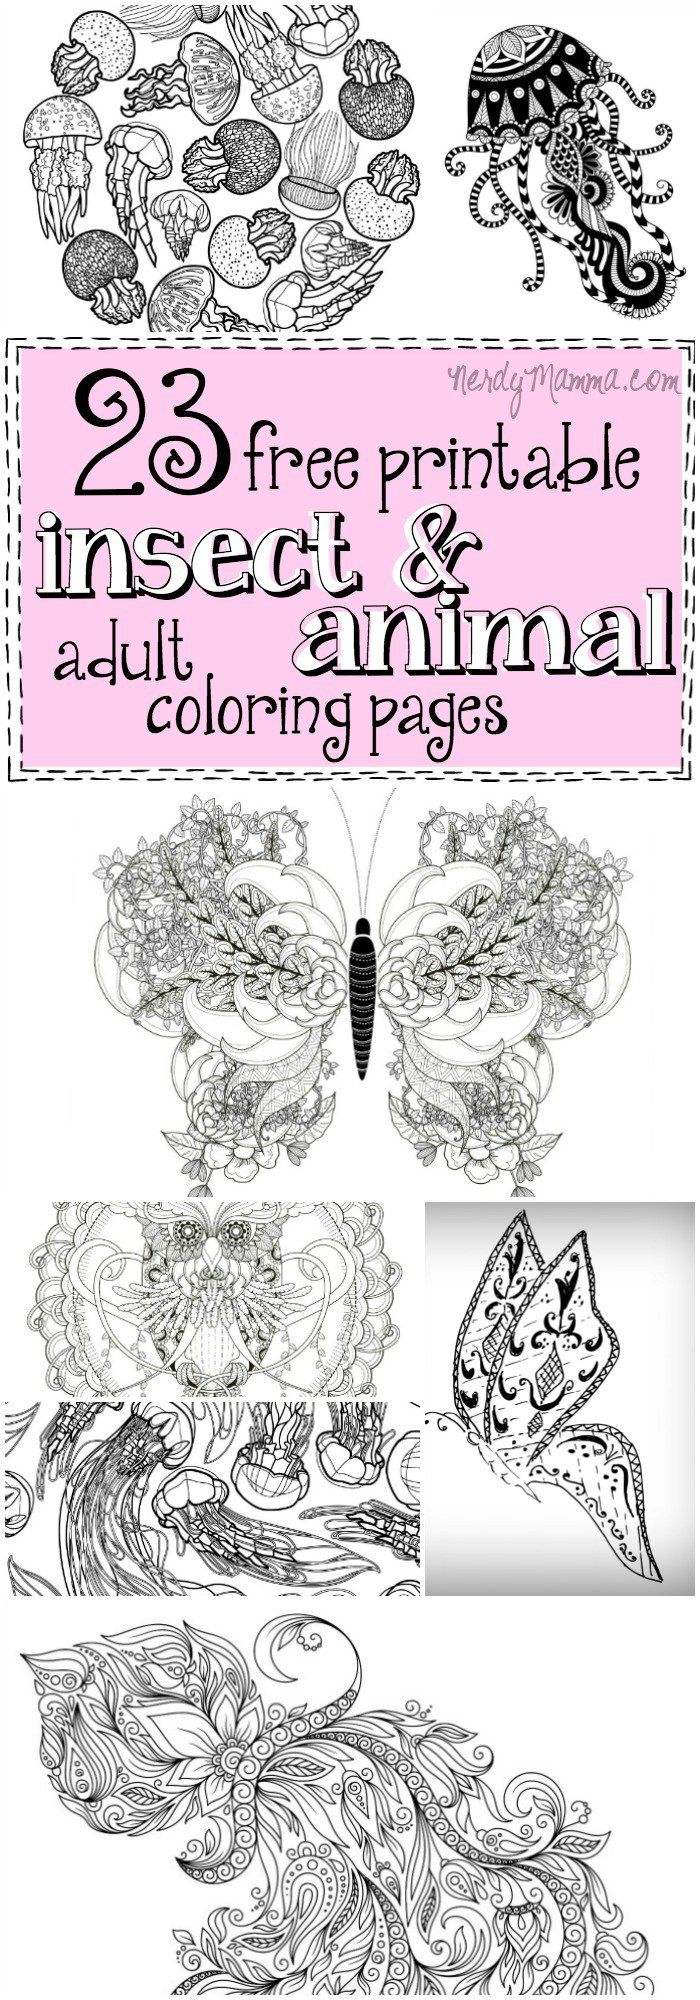 23 Free Printable Insect Animal Adult Coloring Pages Adult